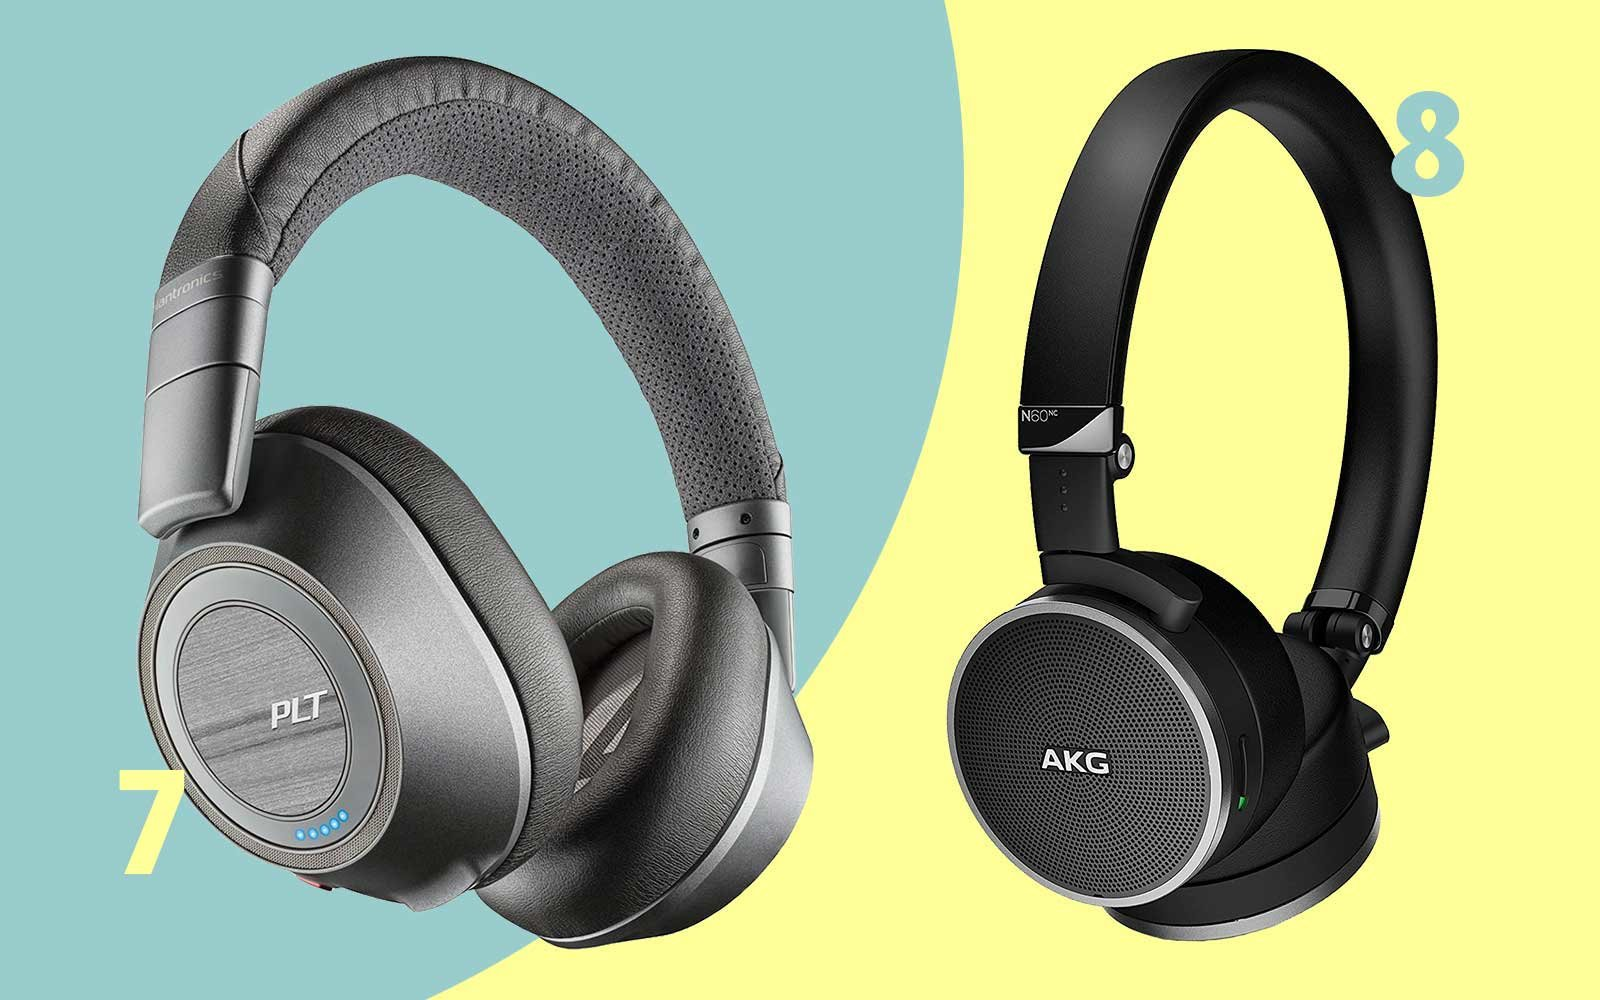 Noise-canceling headphones by AKG and Plantronics, under $200